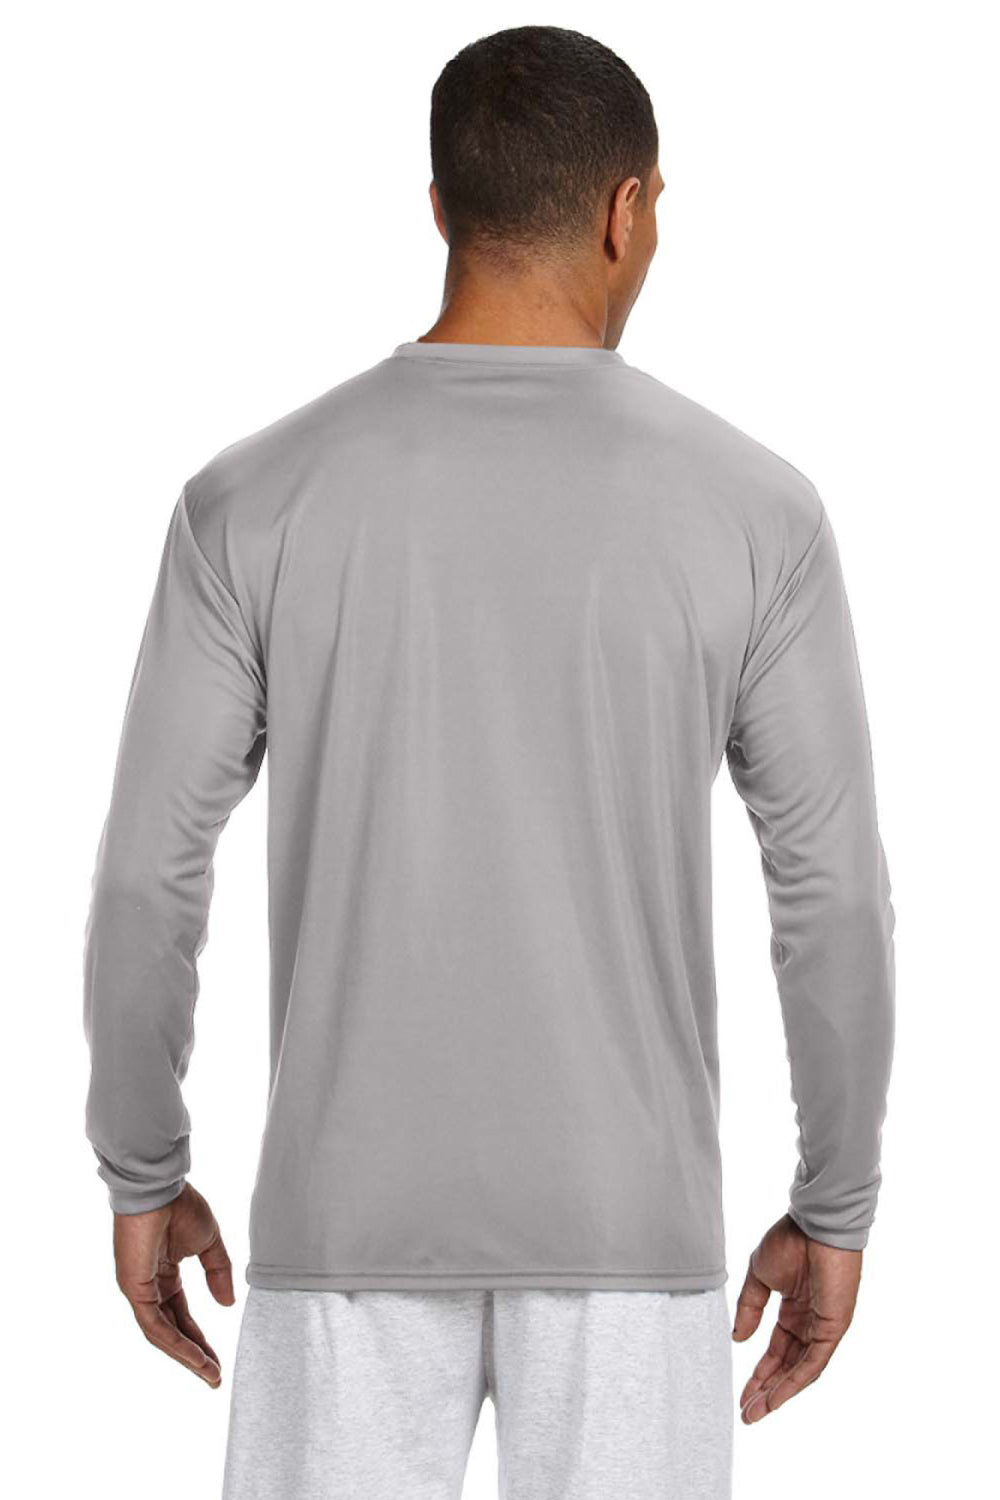 A4 N3165 Mens Cooling Performance Moisture Wicking Long Sleeve Crewneck T-Shirt Silver Grey Back